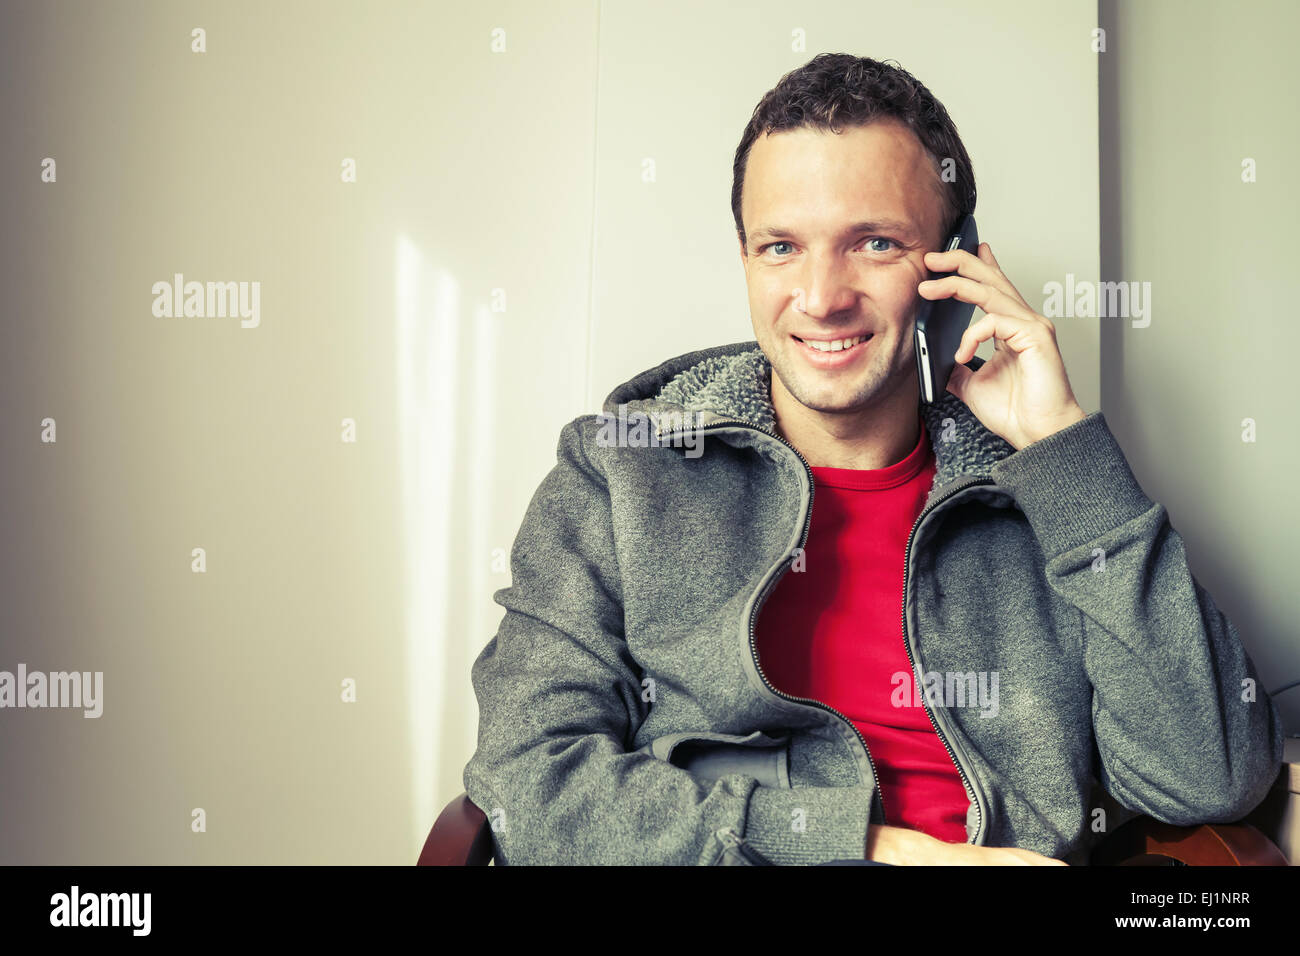 Portrait of sitting young Caucasian man talking on mobile phone. Vintage toned photo with old style filter effect Stock Photo